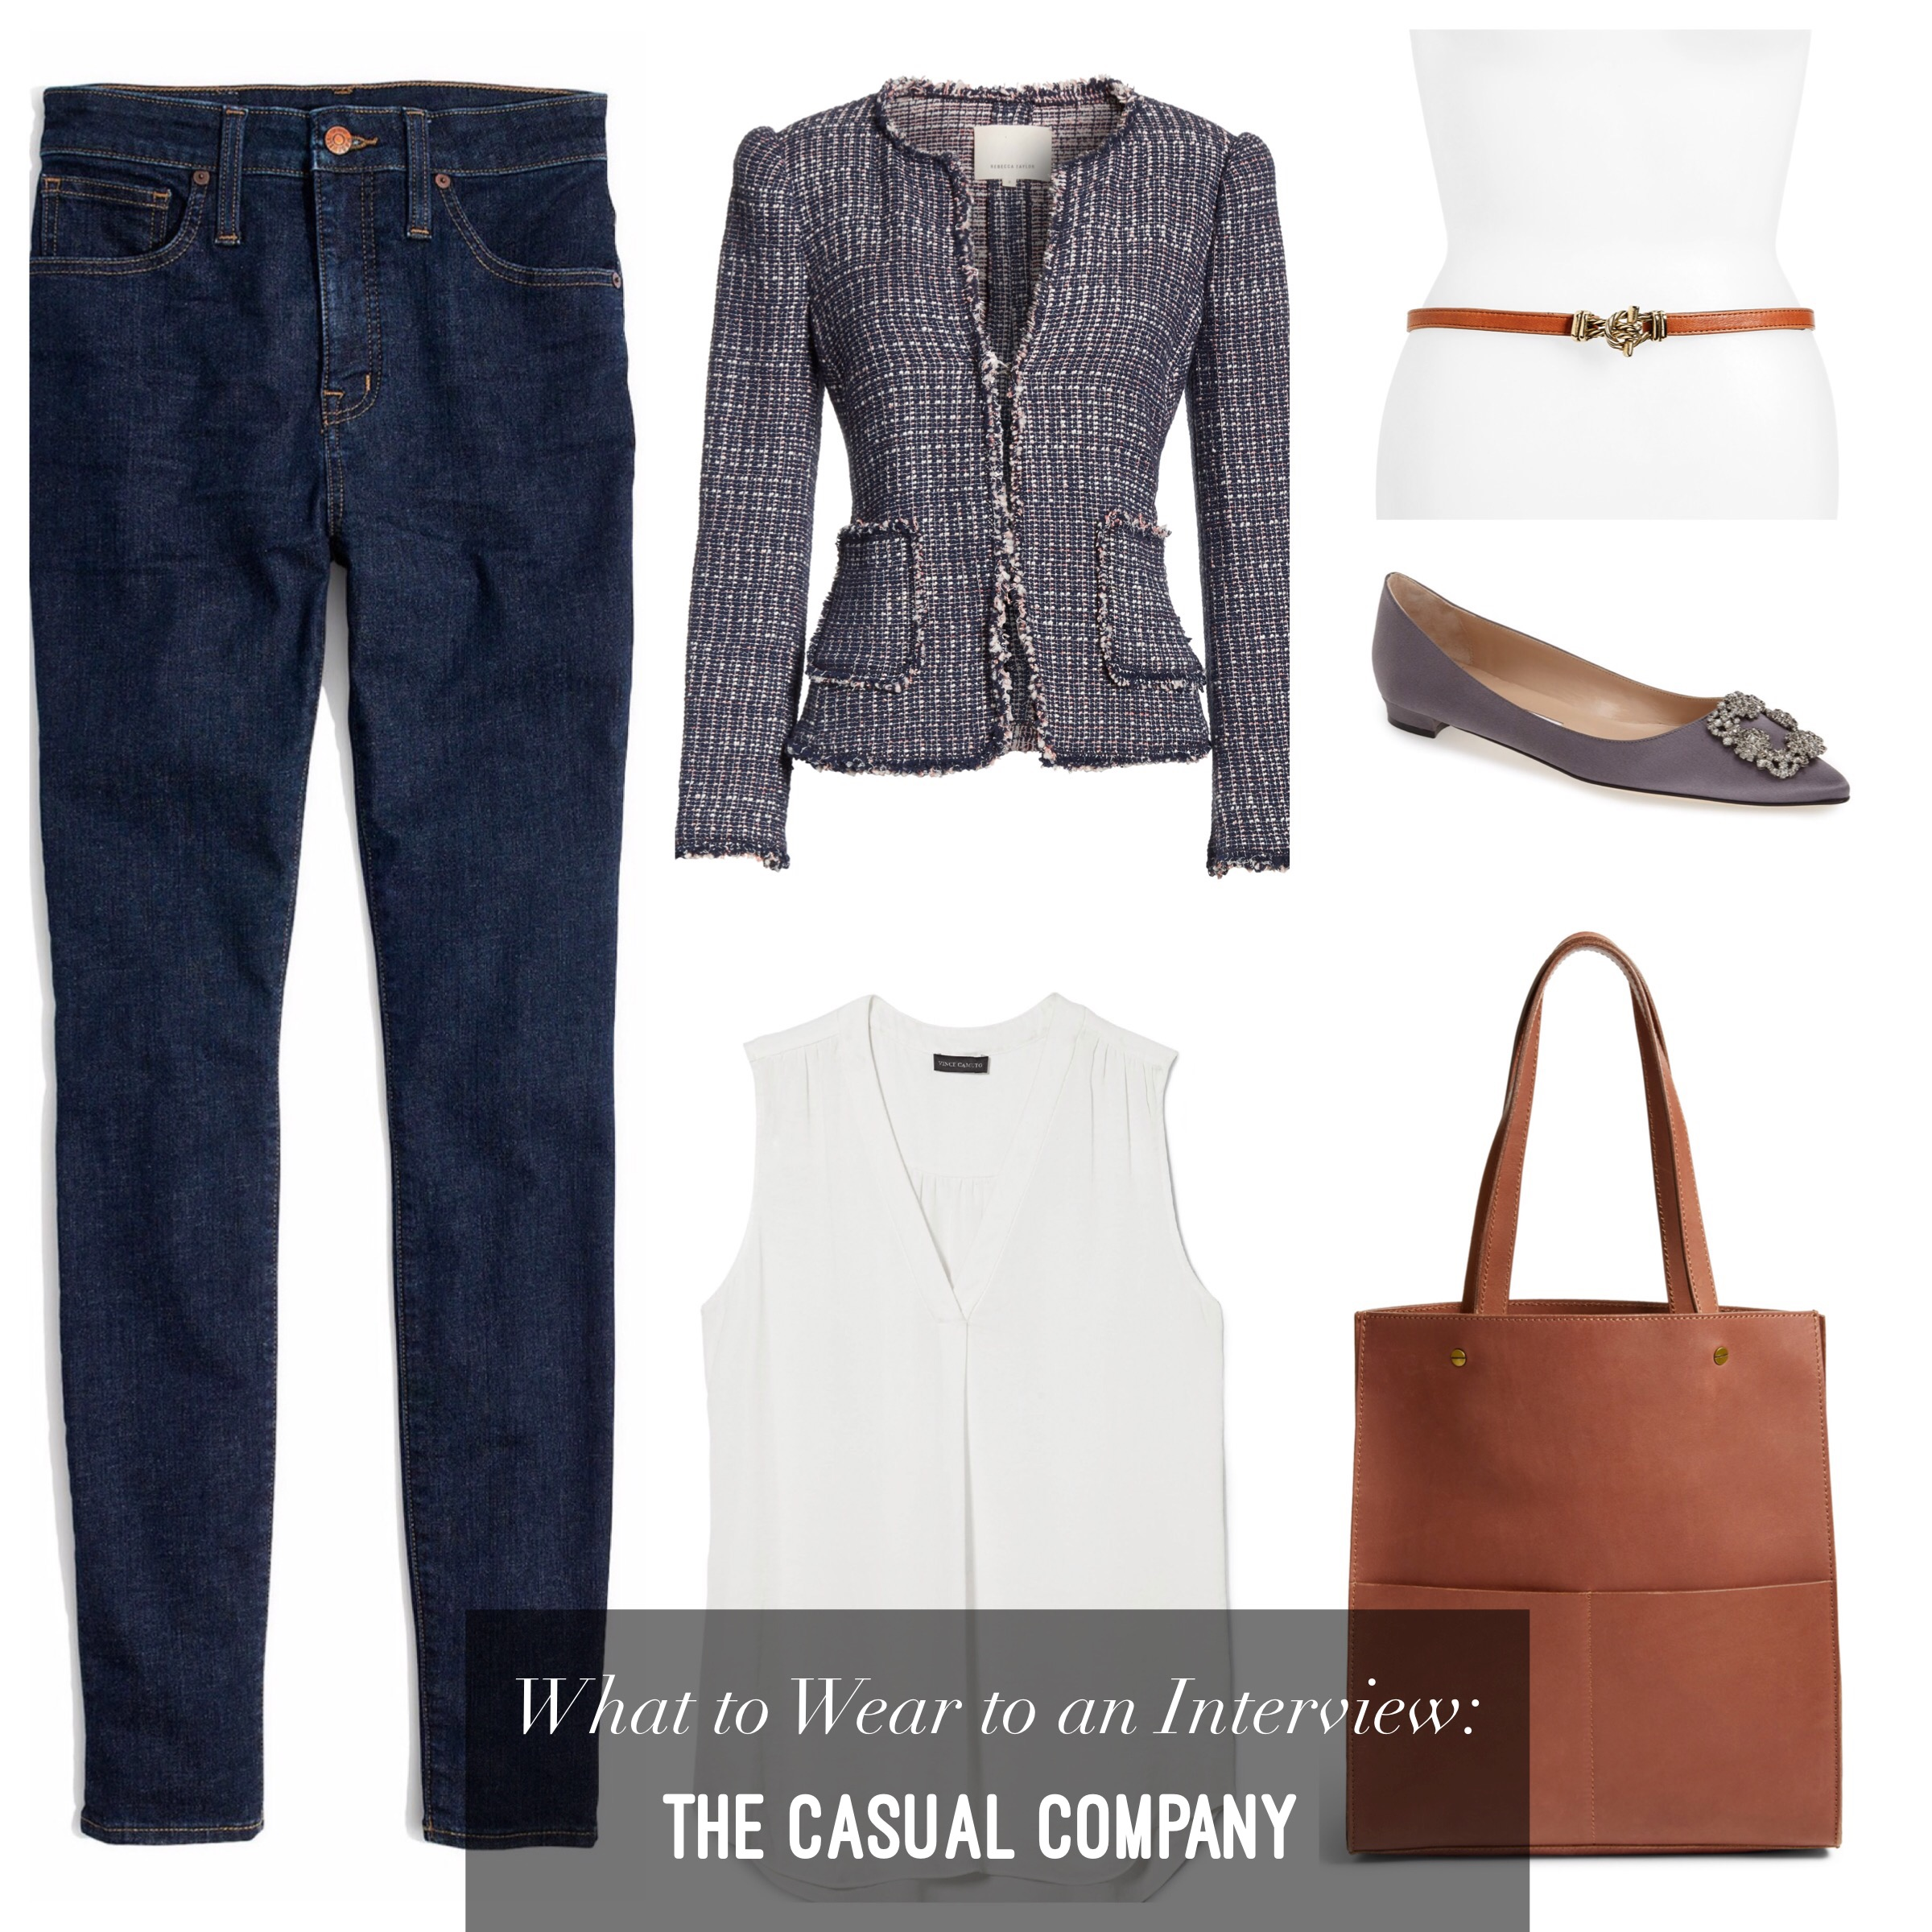 what to wear to an interview jeans casual company start-up